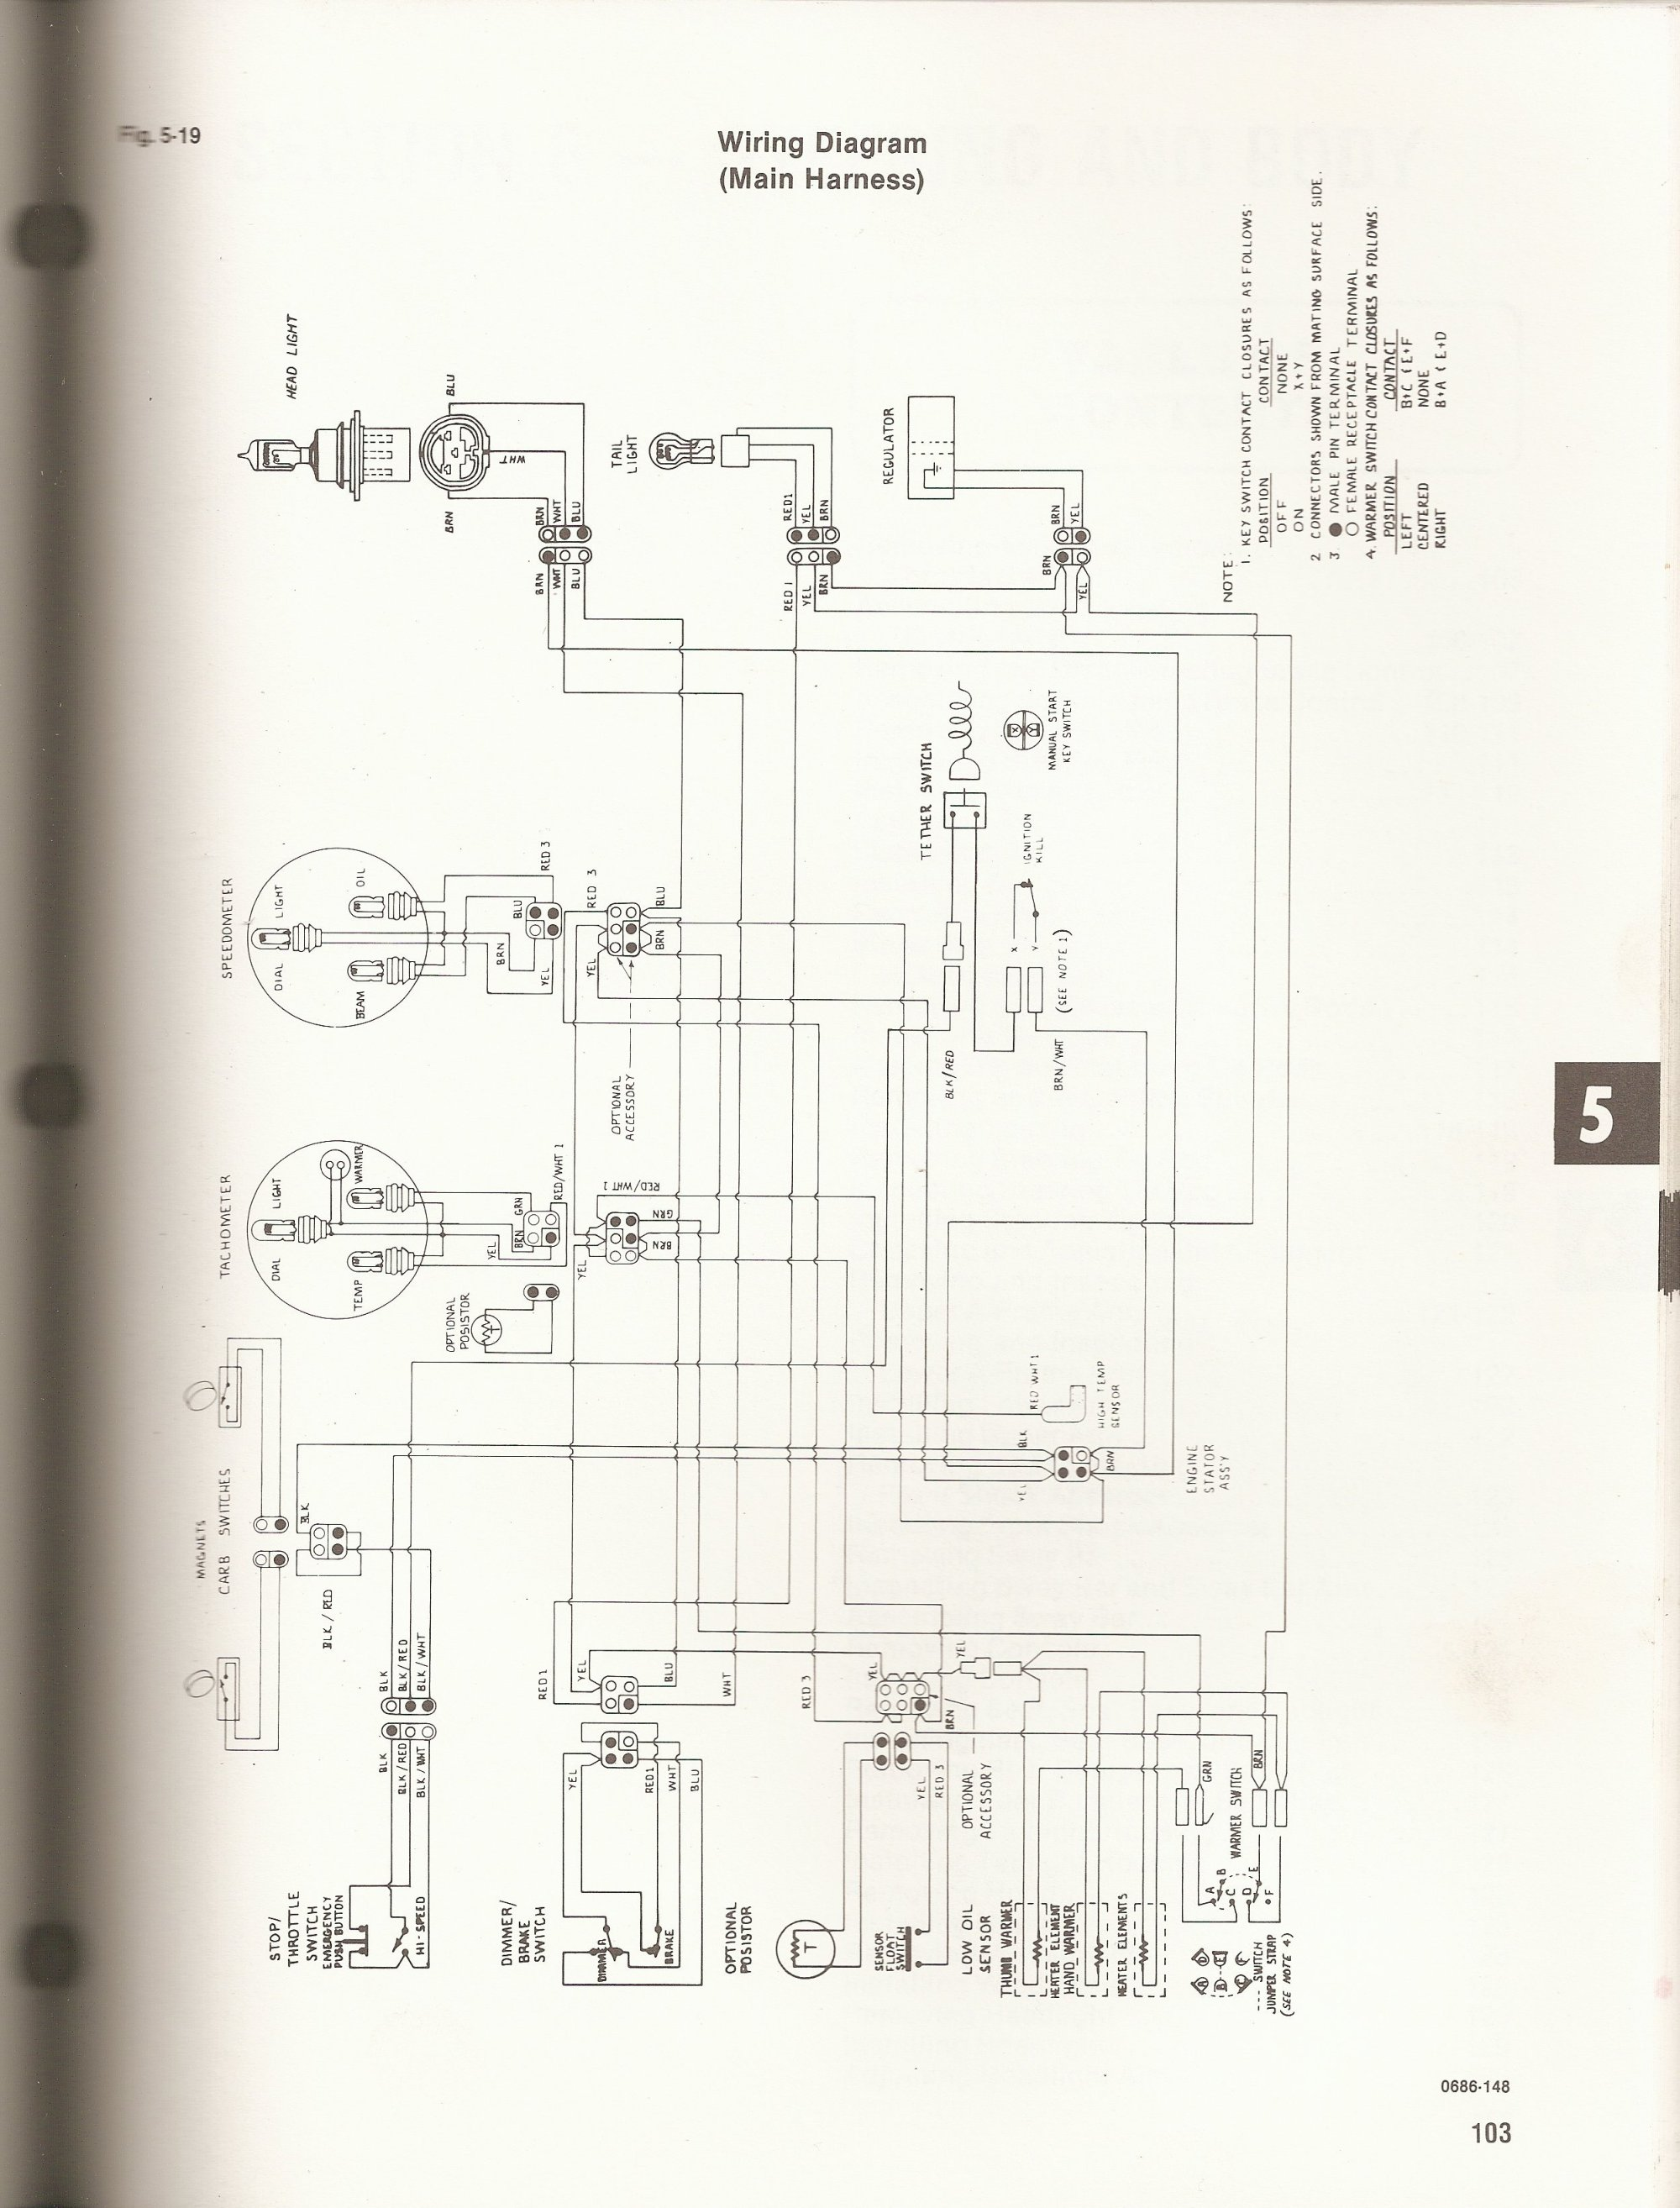 hight resolution of arctic cat wildcat wiring diagram wiring diagram today 1992 arctic cat wildcat 700 wiring diagram 1992 arctic cat 700 wildcat wiring diagram